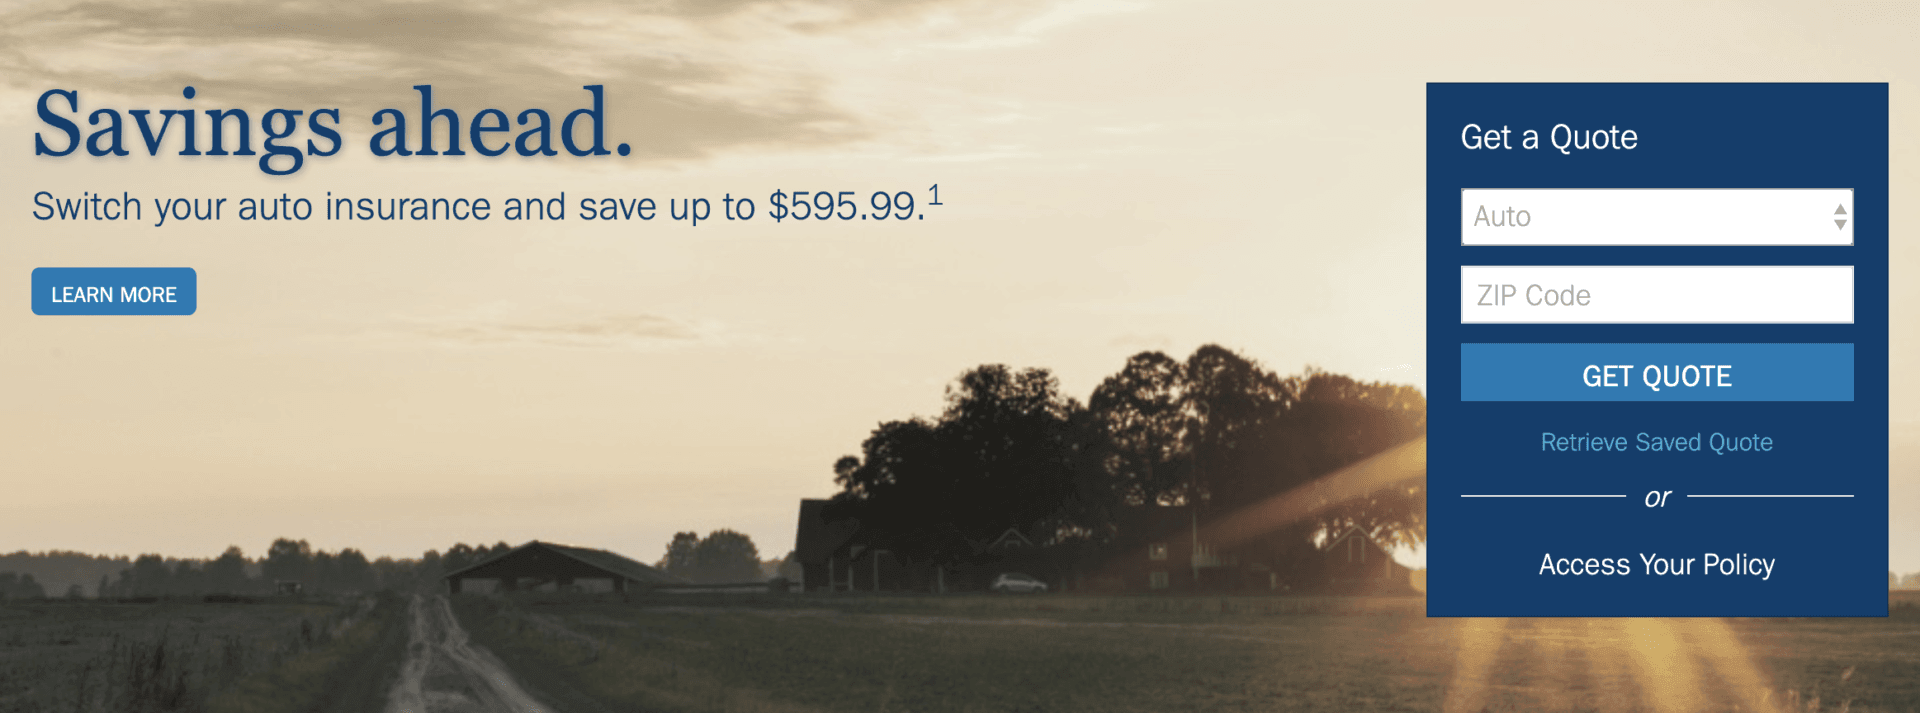 Ameriprise Insurance Review: My Experience With Ameriprise - Start Your Offer